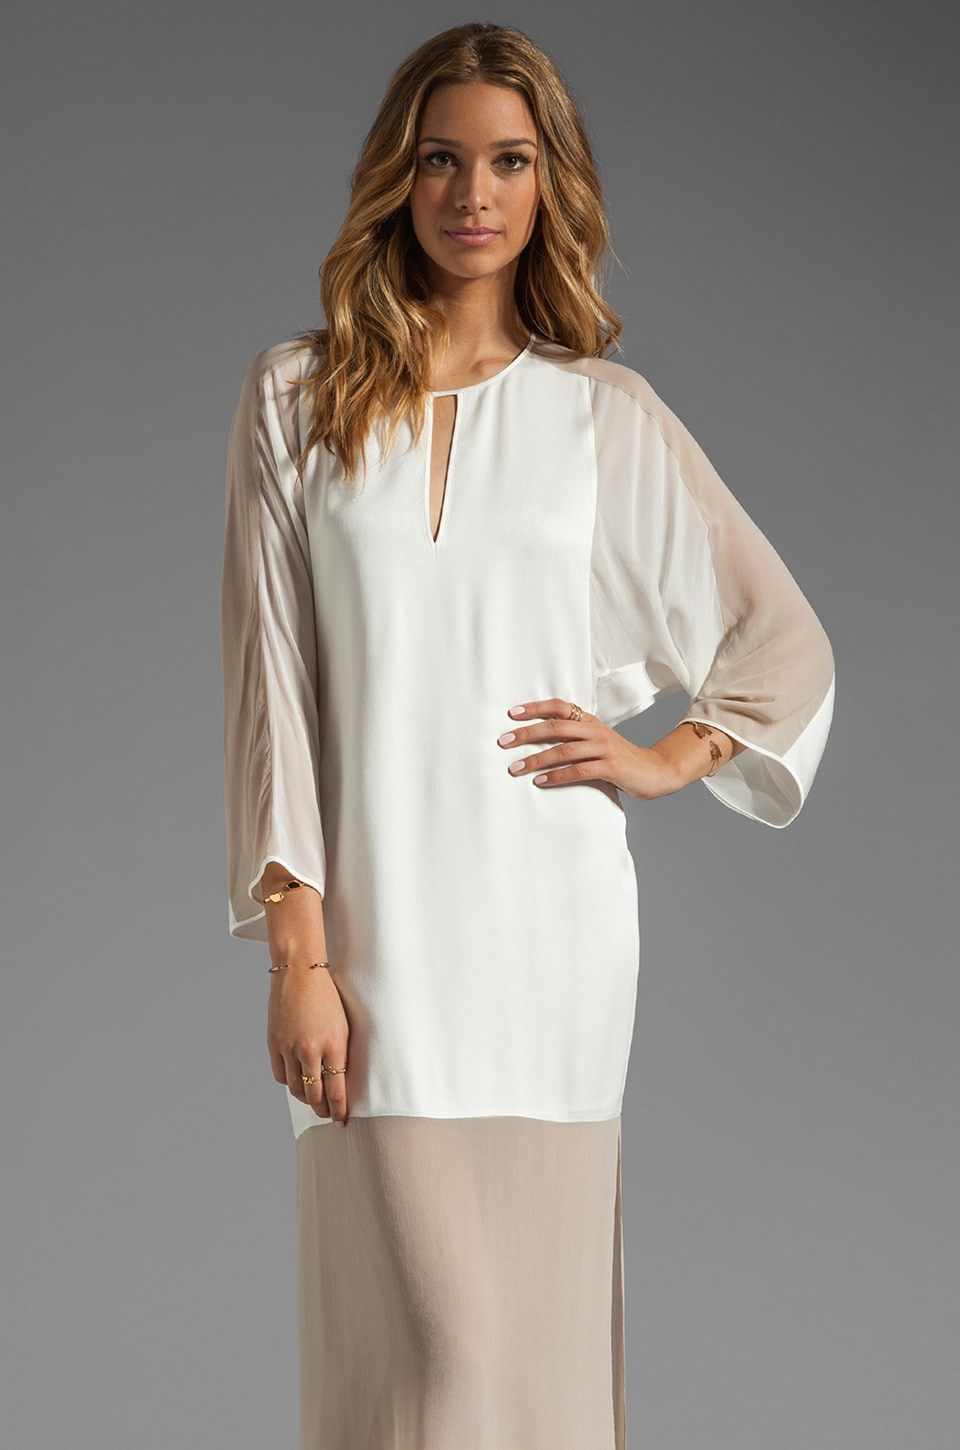 BCBGMAXAZRIA Runway Sheer Bottom Tunic Dress in Talc